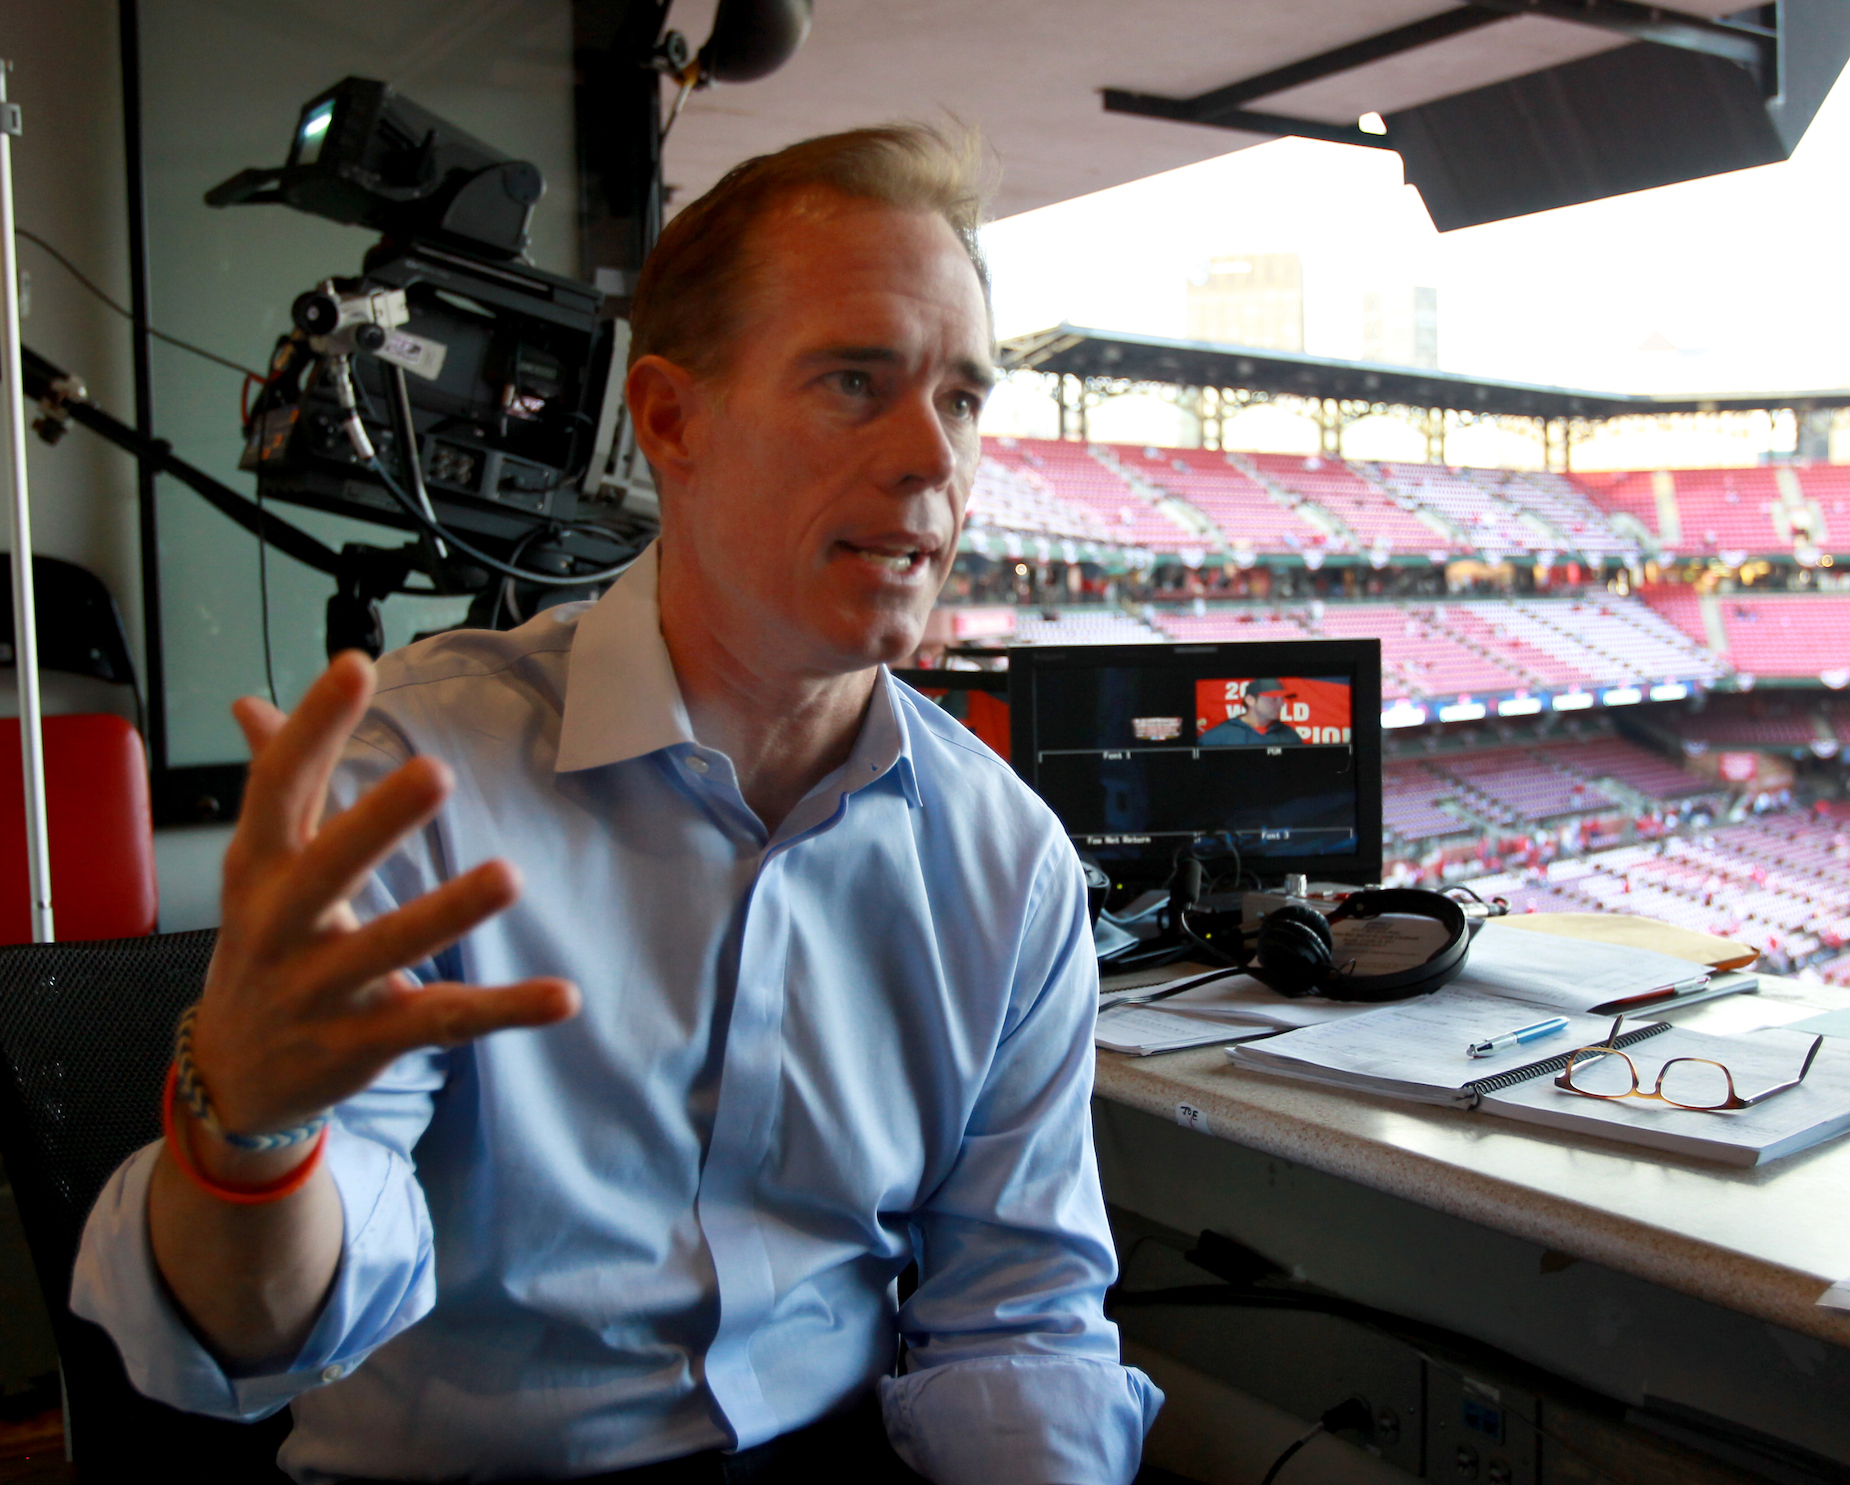 When he's feeling the heat during the Super Bowl or World Series, Joe Buck relies on a simple strategy to keep things in perspective.